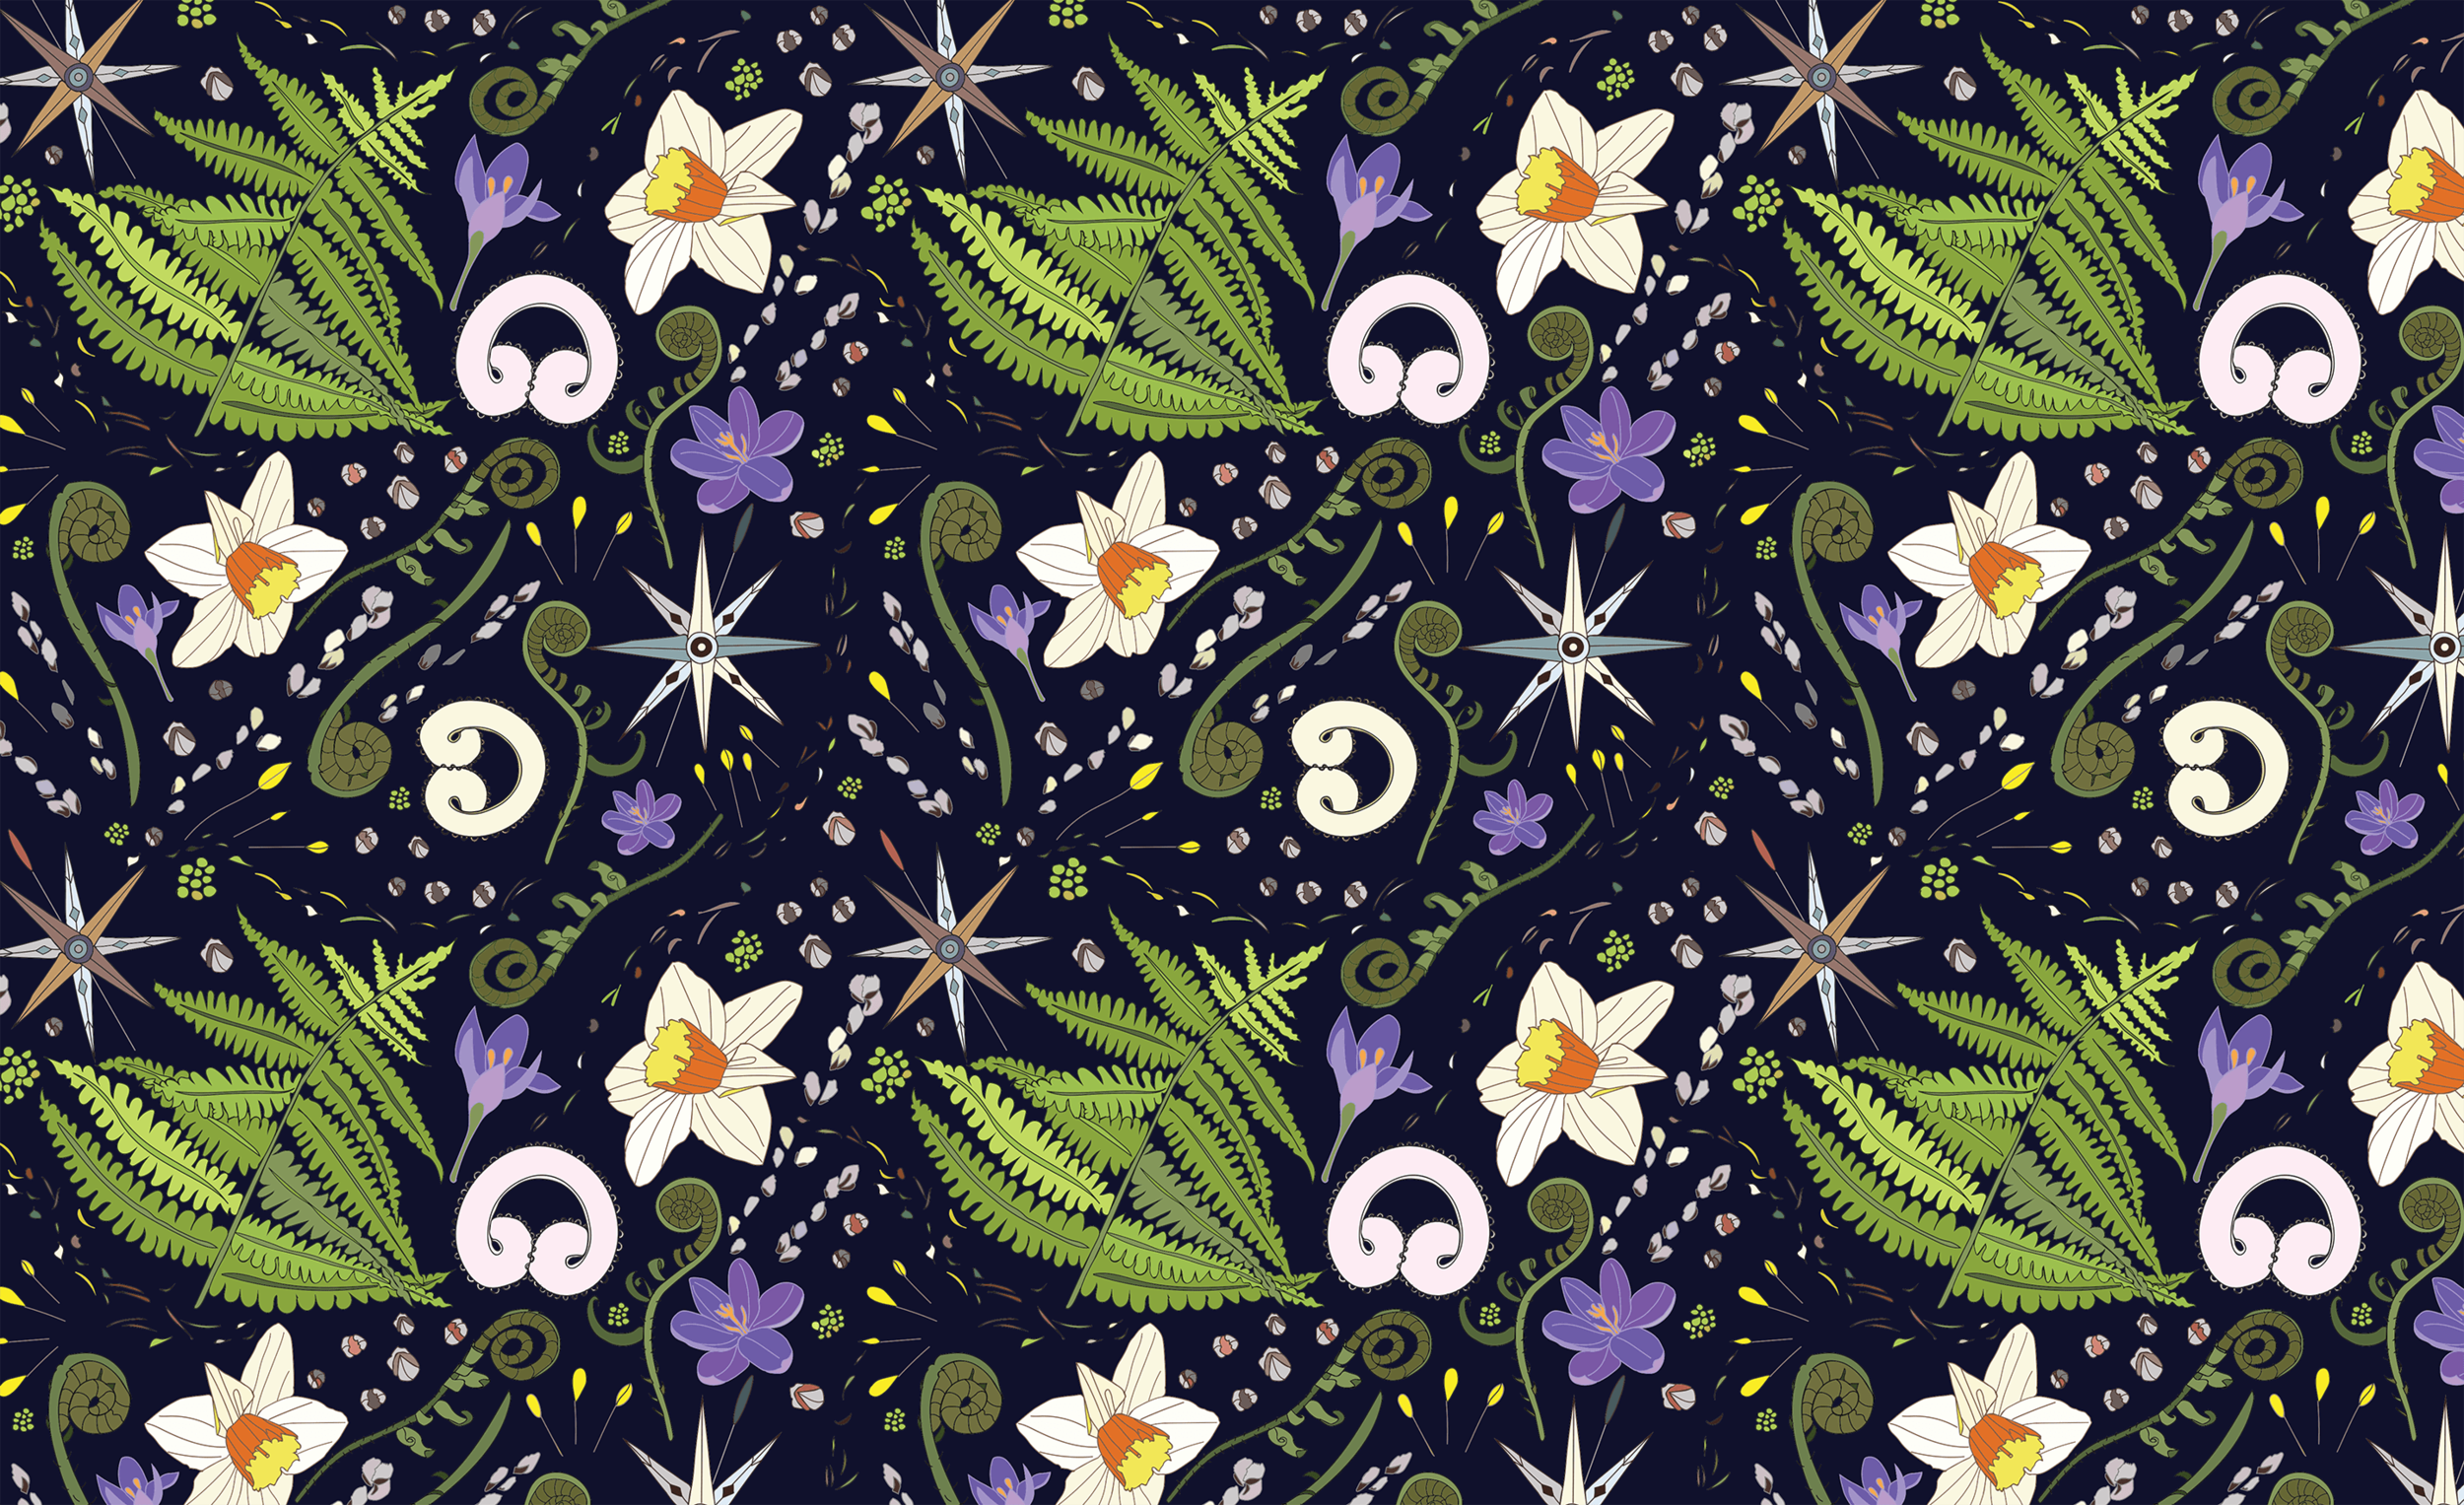 Spring Wind Pattern repeat with dark background